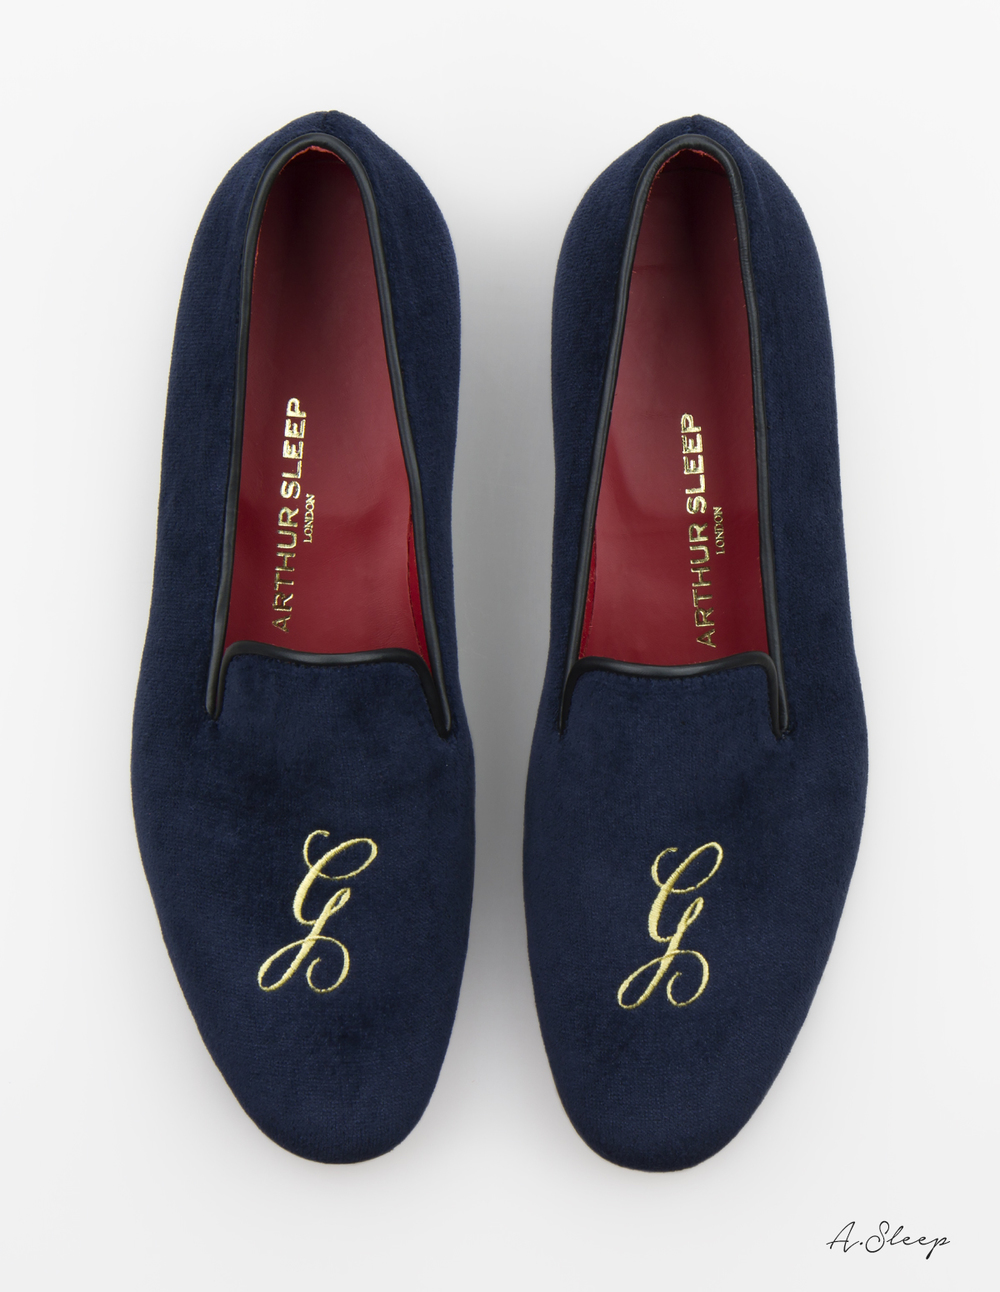 Arthur Sleep monogrammed slippers | Laughing Heart